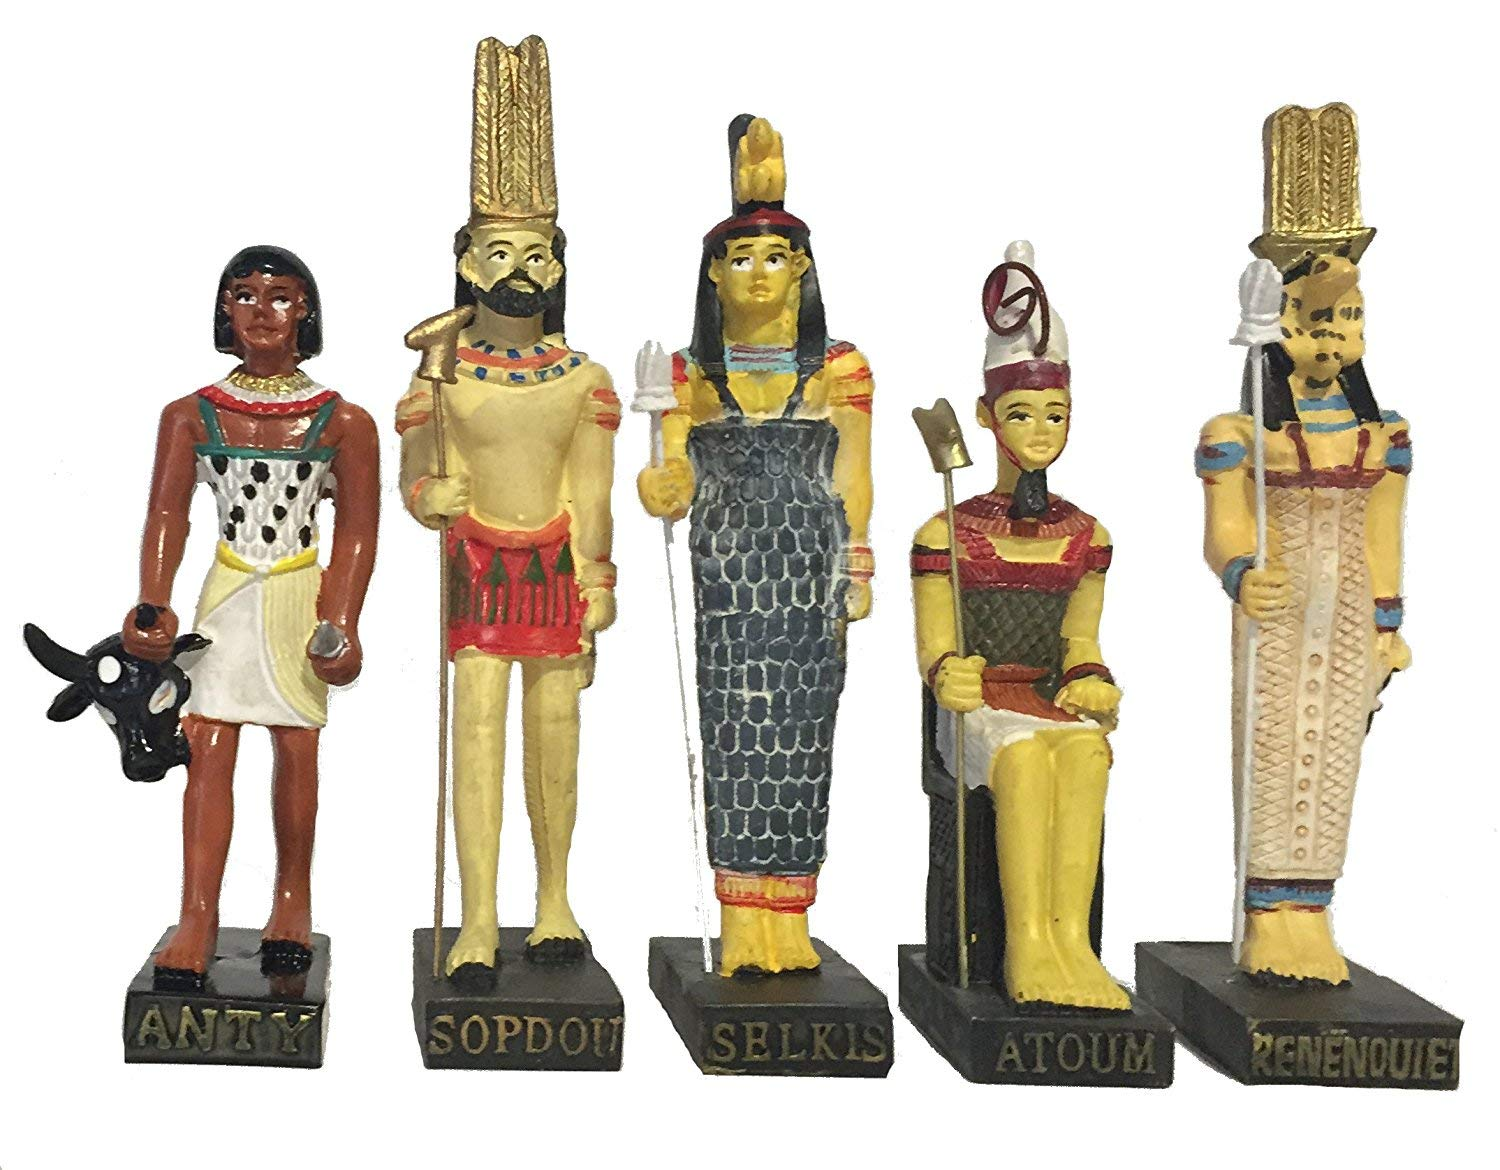 Ancient Egypt Egyptian God 11 Figurines Set Resin Statue size 5 high Anty, Atoum, Noun, Aton, Seth, Selkis, Renenoutet, Sopdou, Horus, Neffertiti, Merseger Amercom EG-8